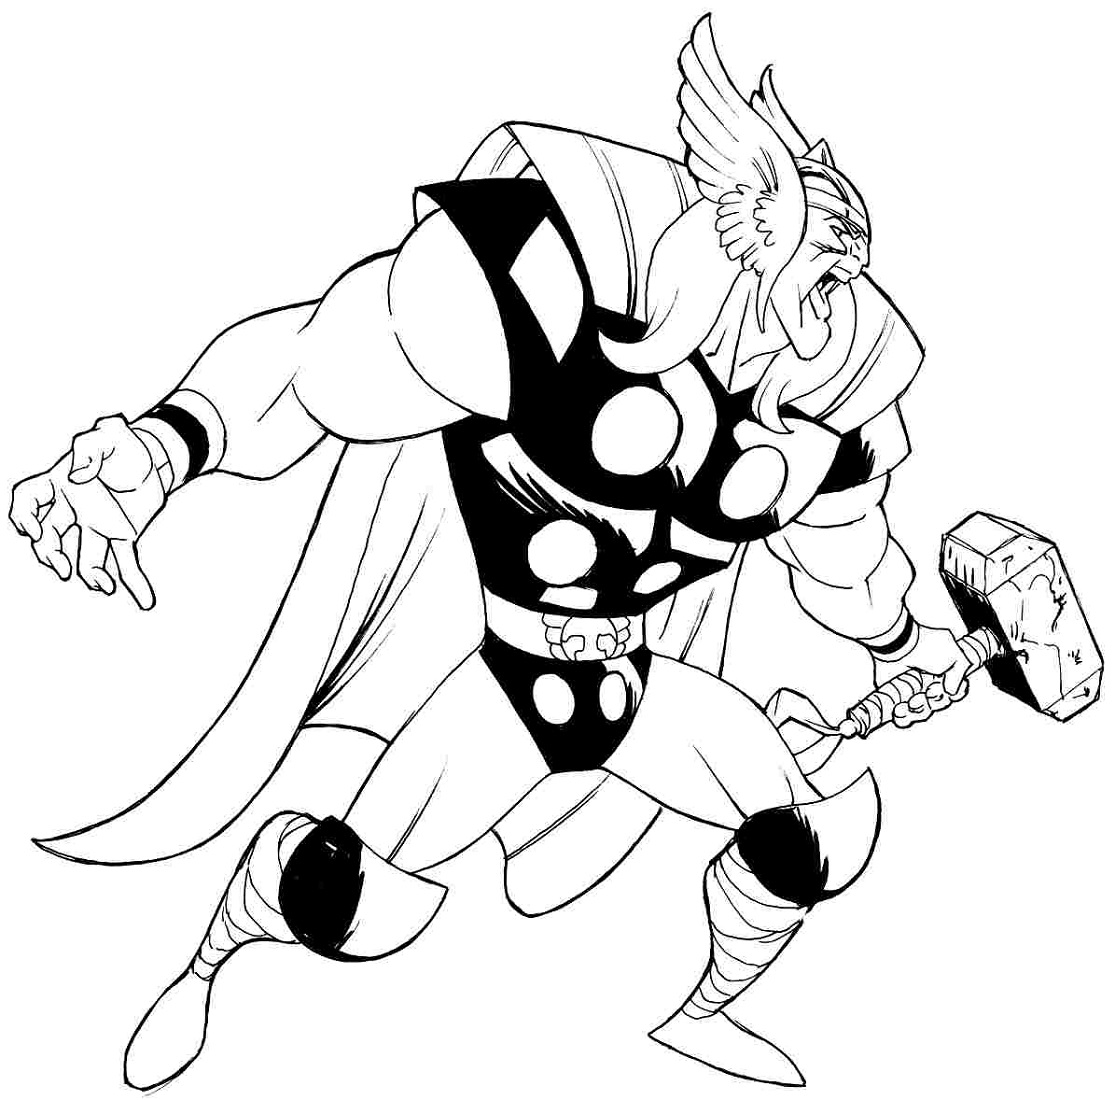 Free Coloring Pages to Print Hero